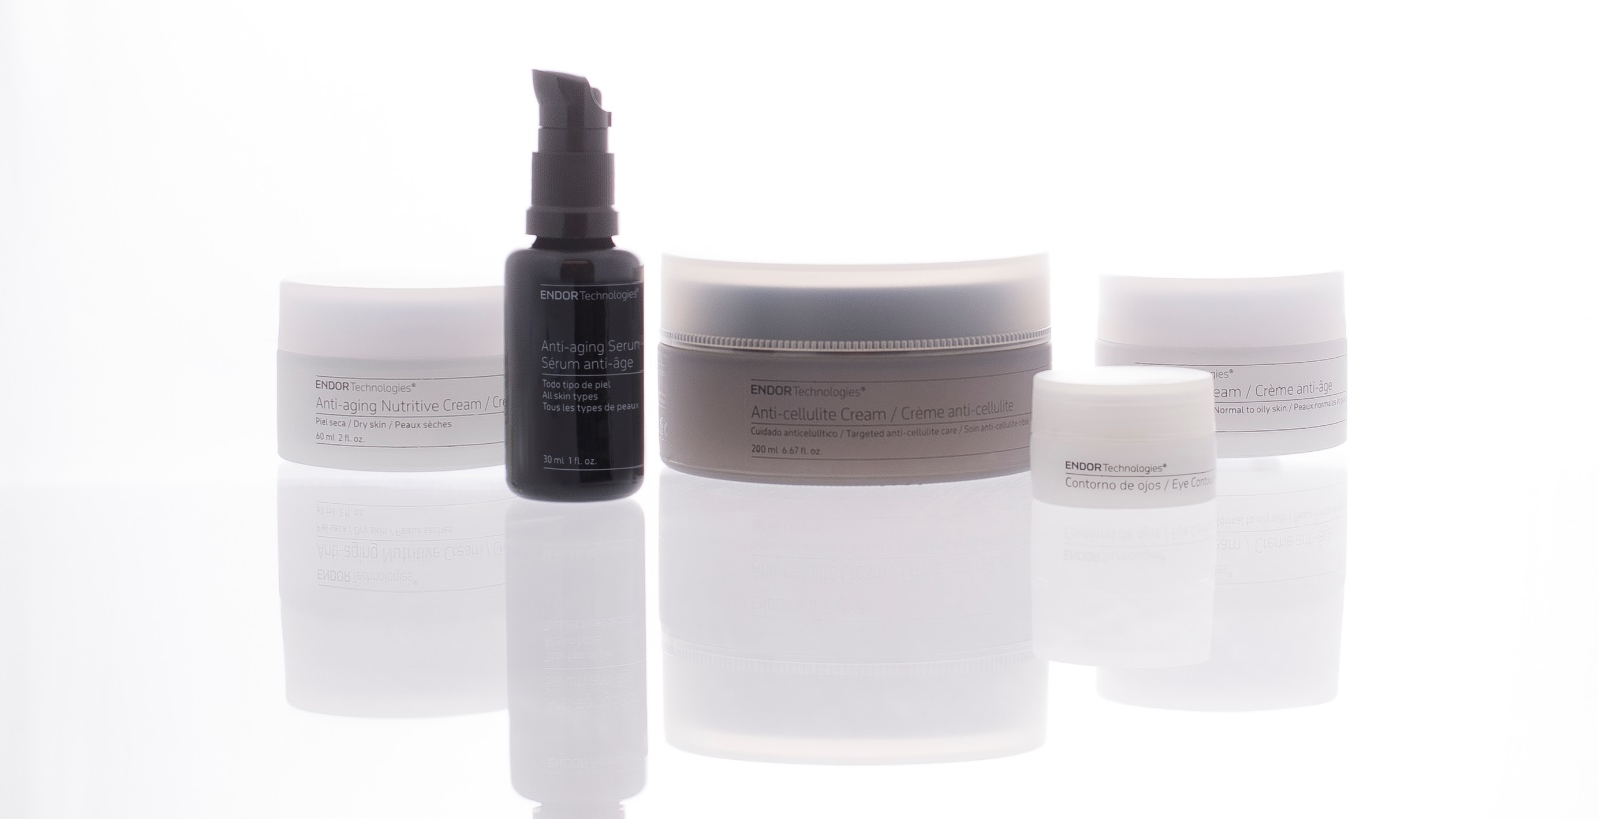 anti-aging skincare solutions from Endor